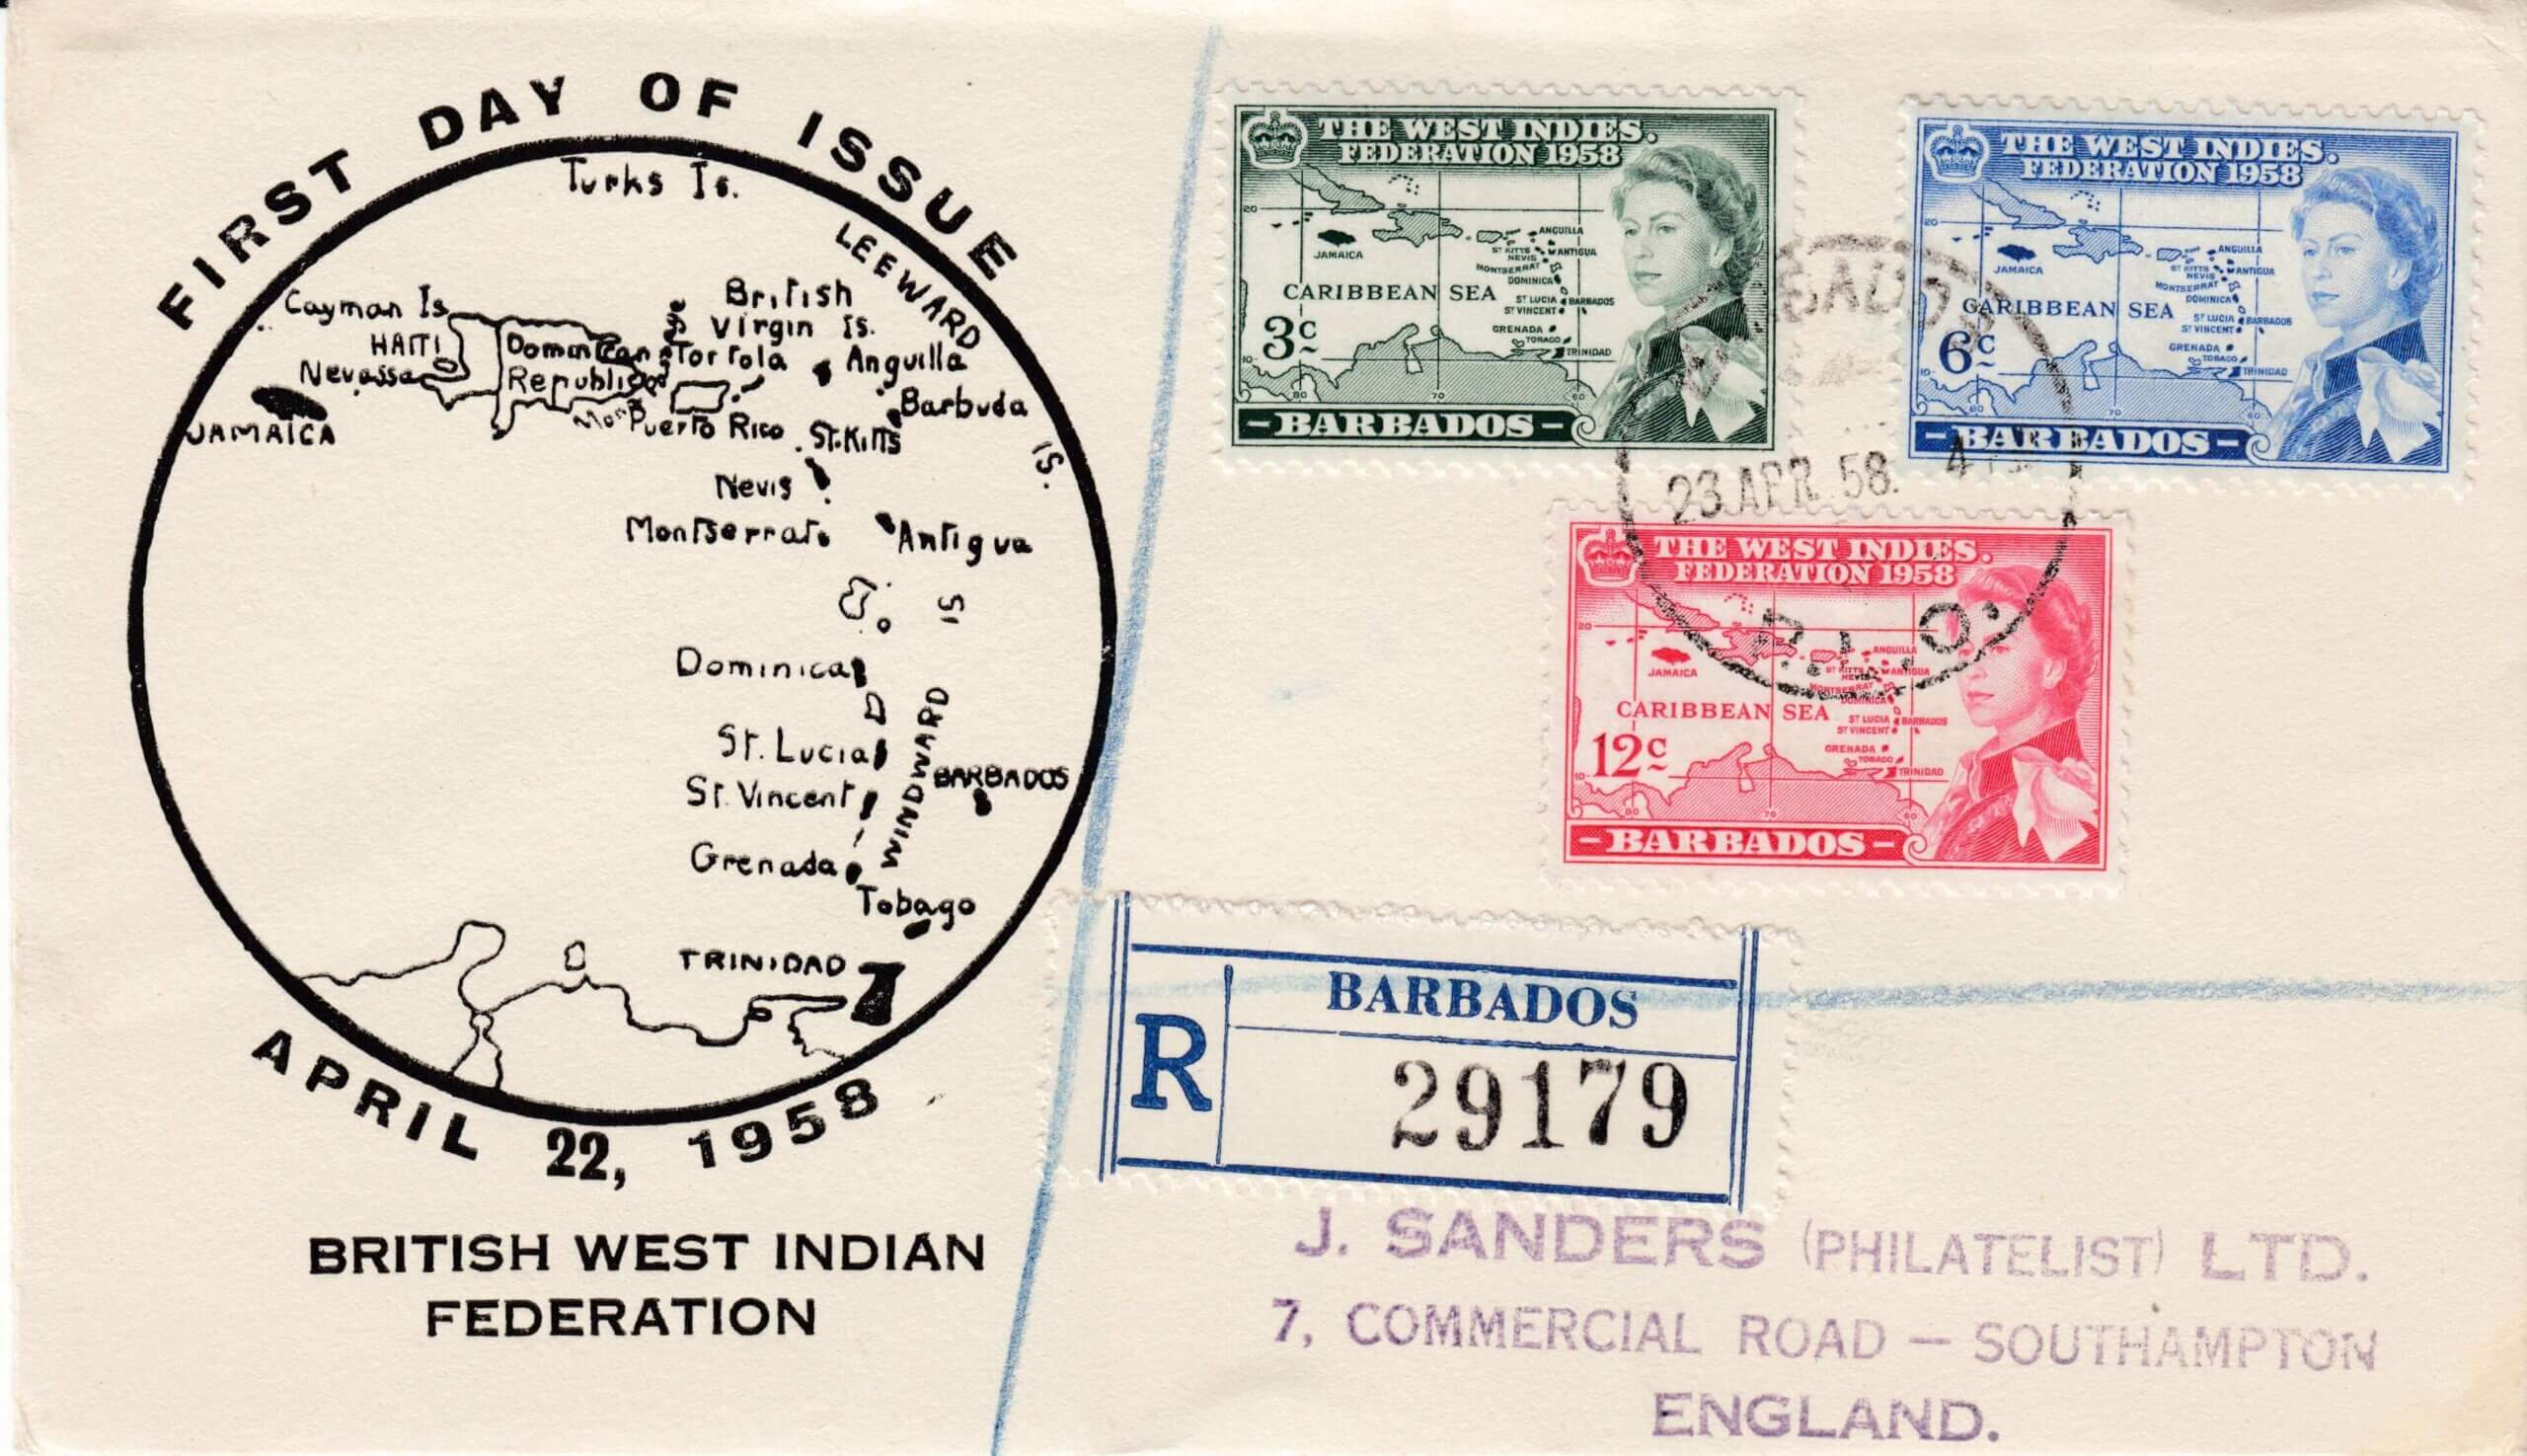 British West Indies Federation Barbados First Day Cover - Barbados